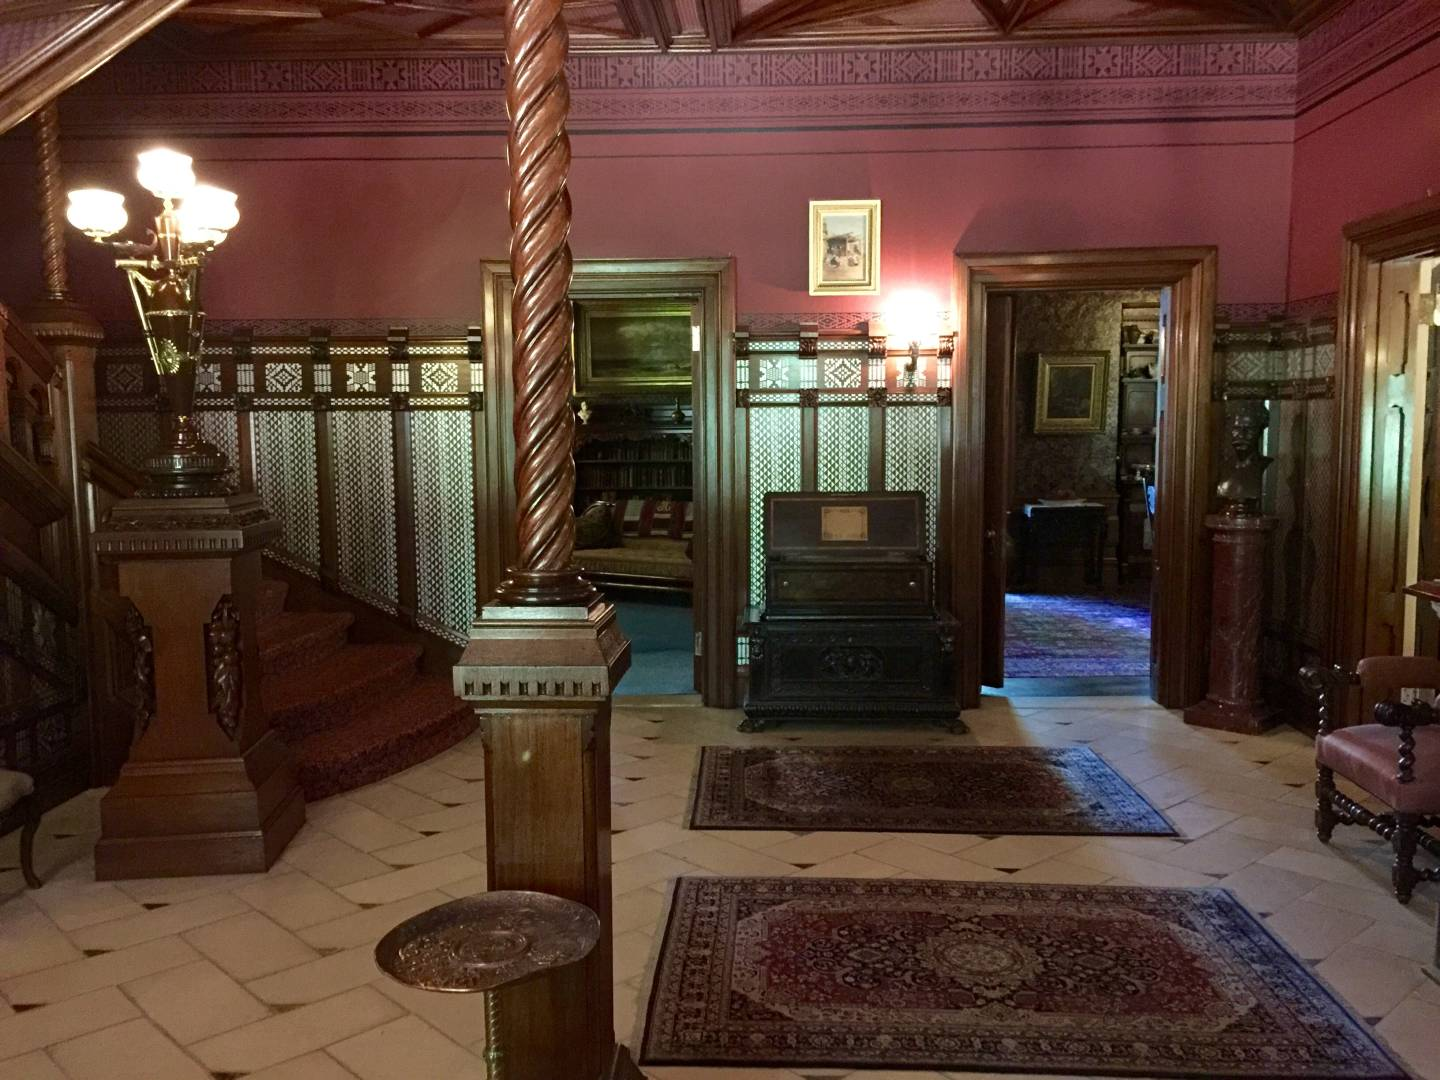 Mark Twain House, the entrance